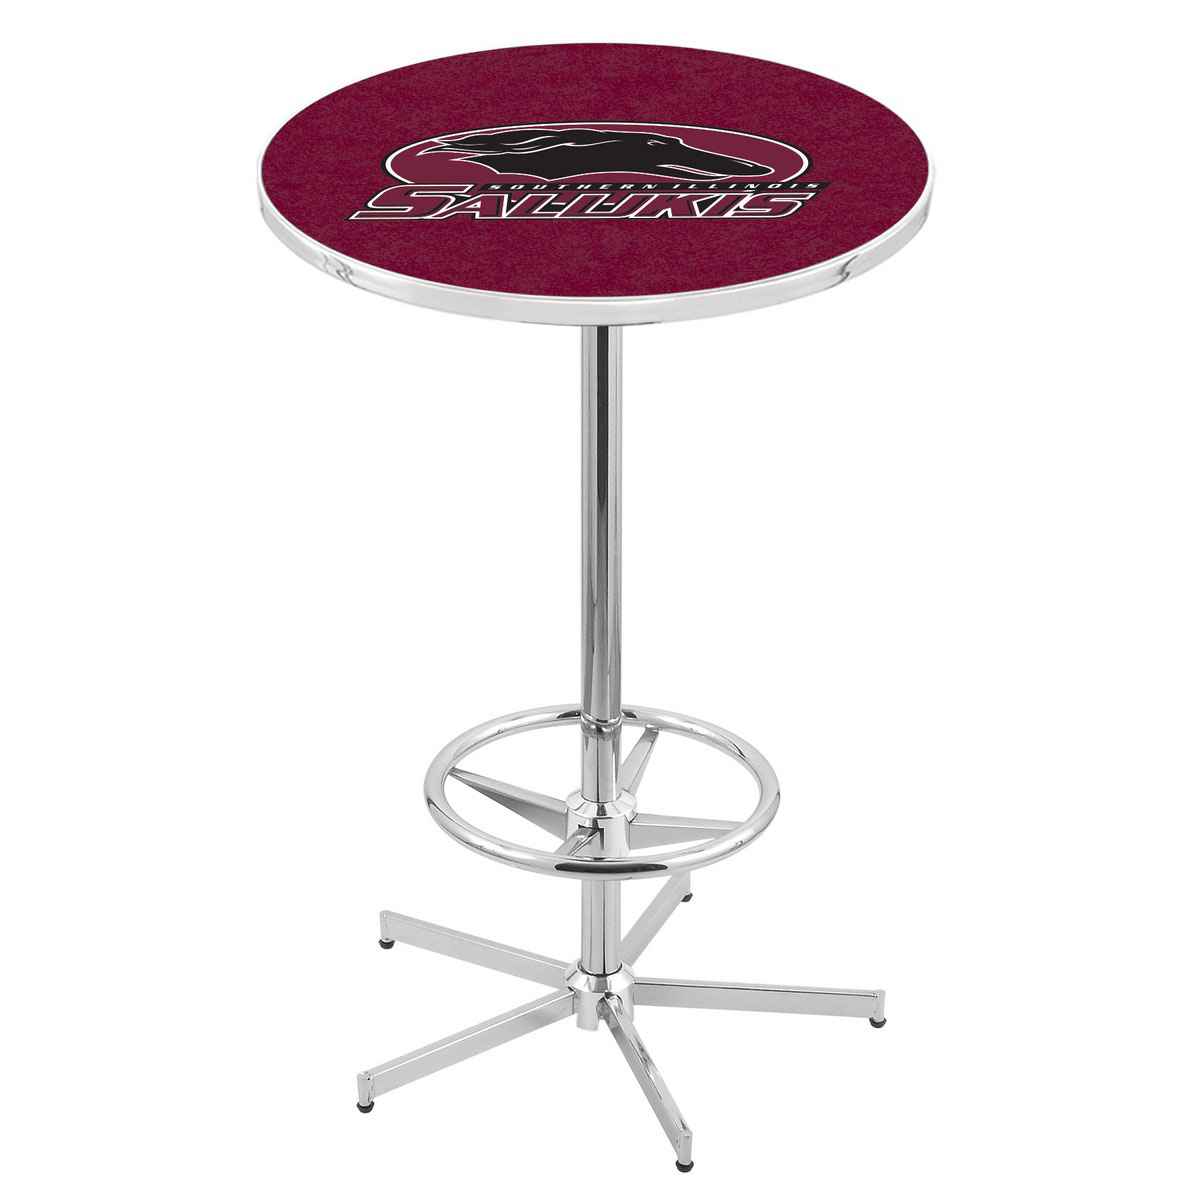 Popular Chrome Southern Illinois Pub Table Product Photo